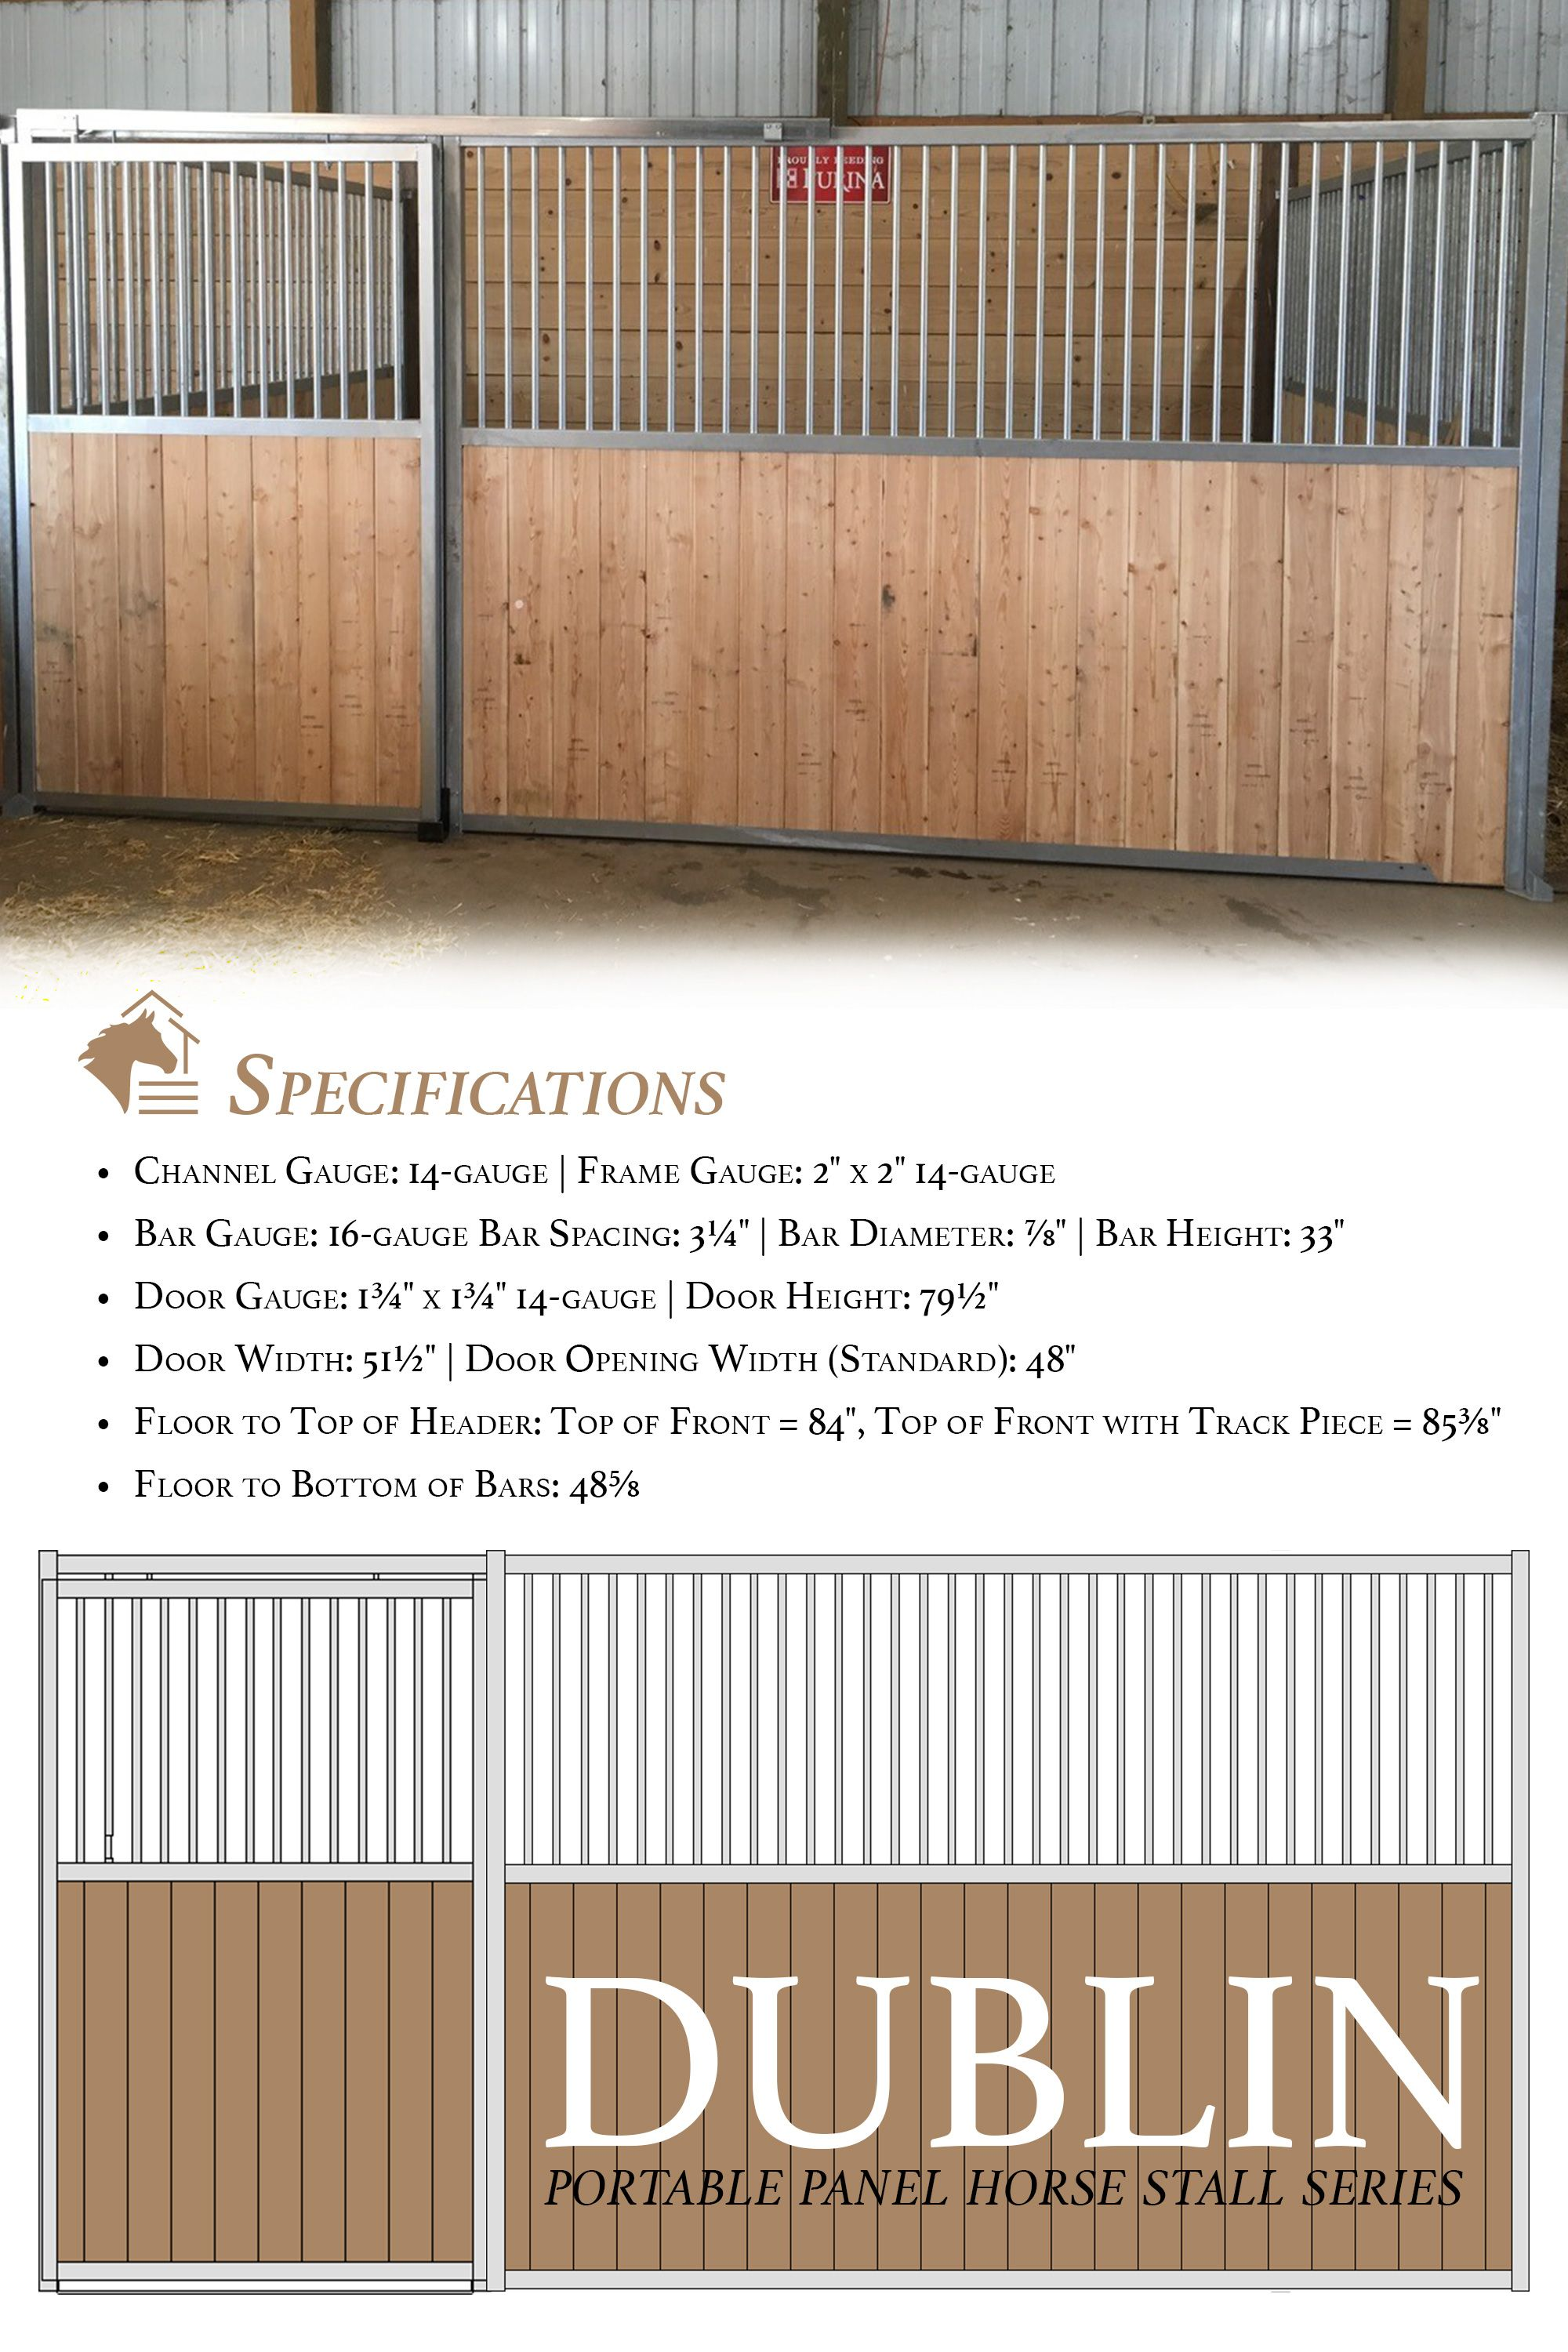 Our Dublin Portable Panel Horse Stalls Offer A Great Portable Or